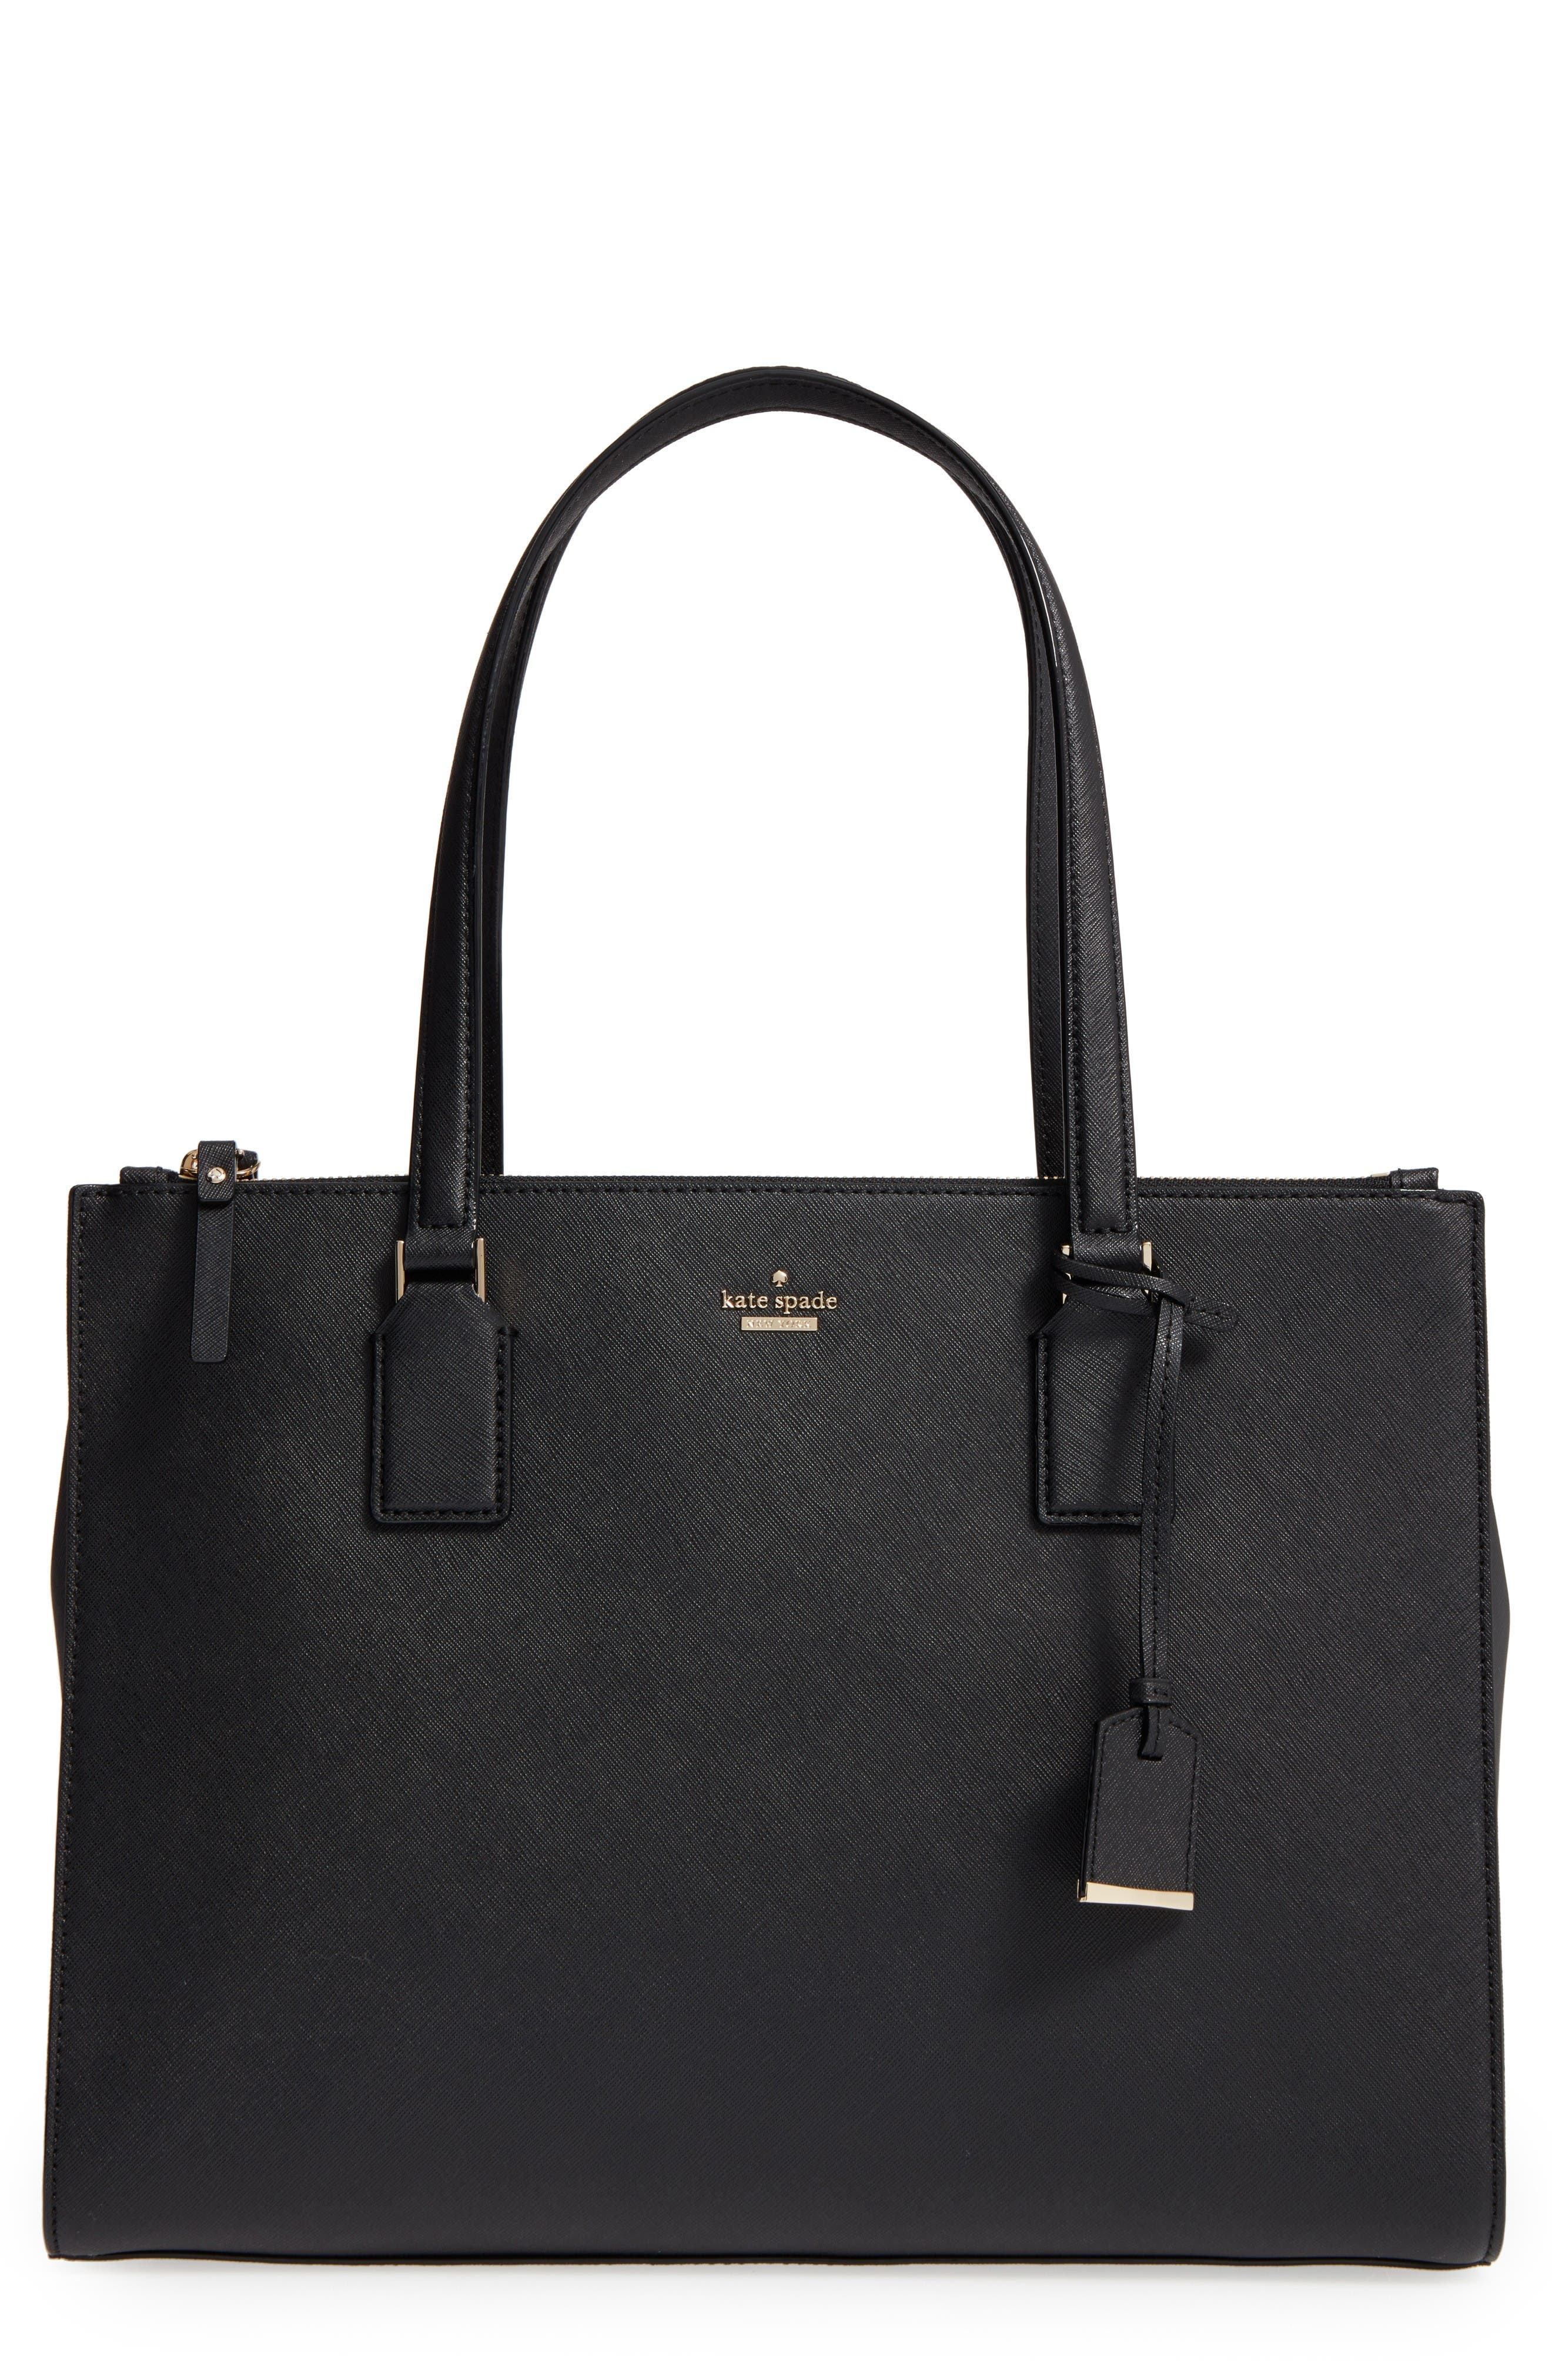 kate spade new york cameron street - jensen leather tote